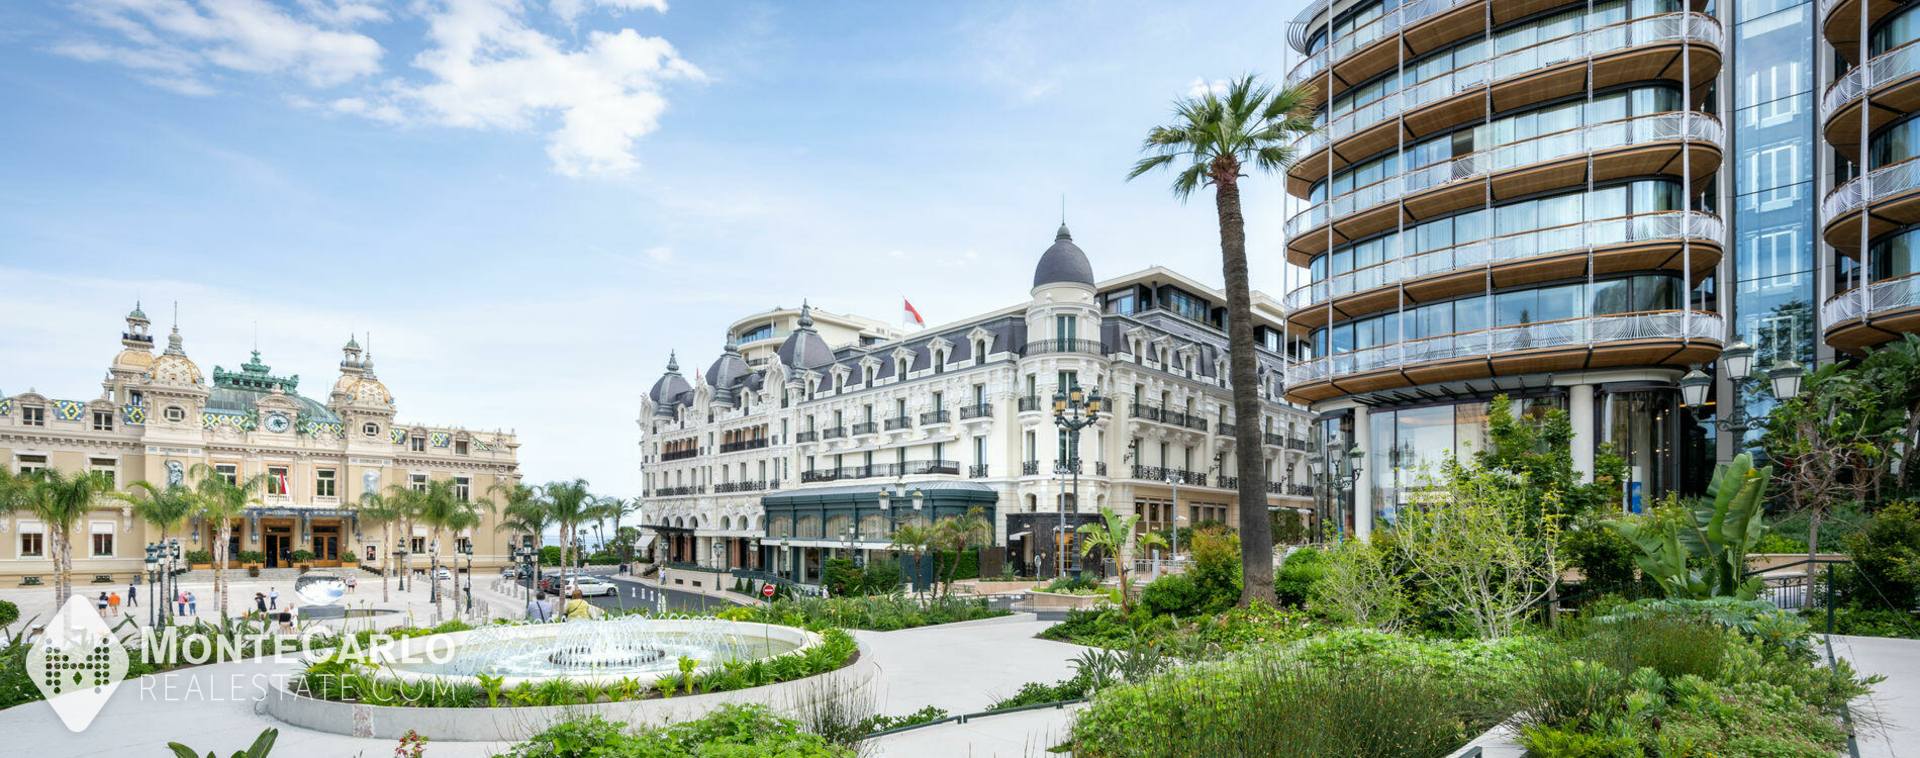 Location One Monte-Carlo - Penthouse/Roof / 4 pièces | Monte-Carlo Real Estate [IML-MC1-B8]